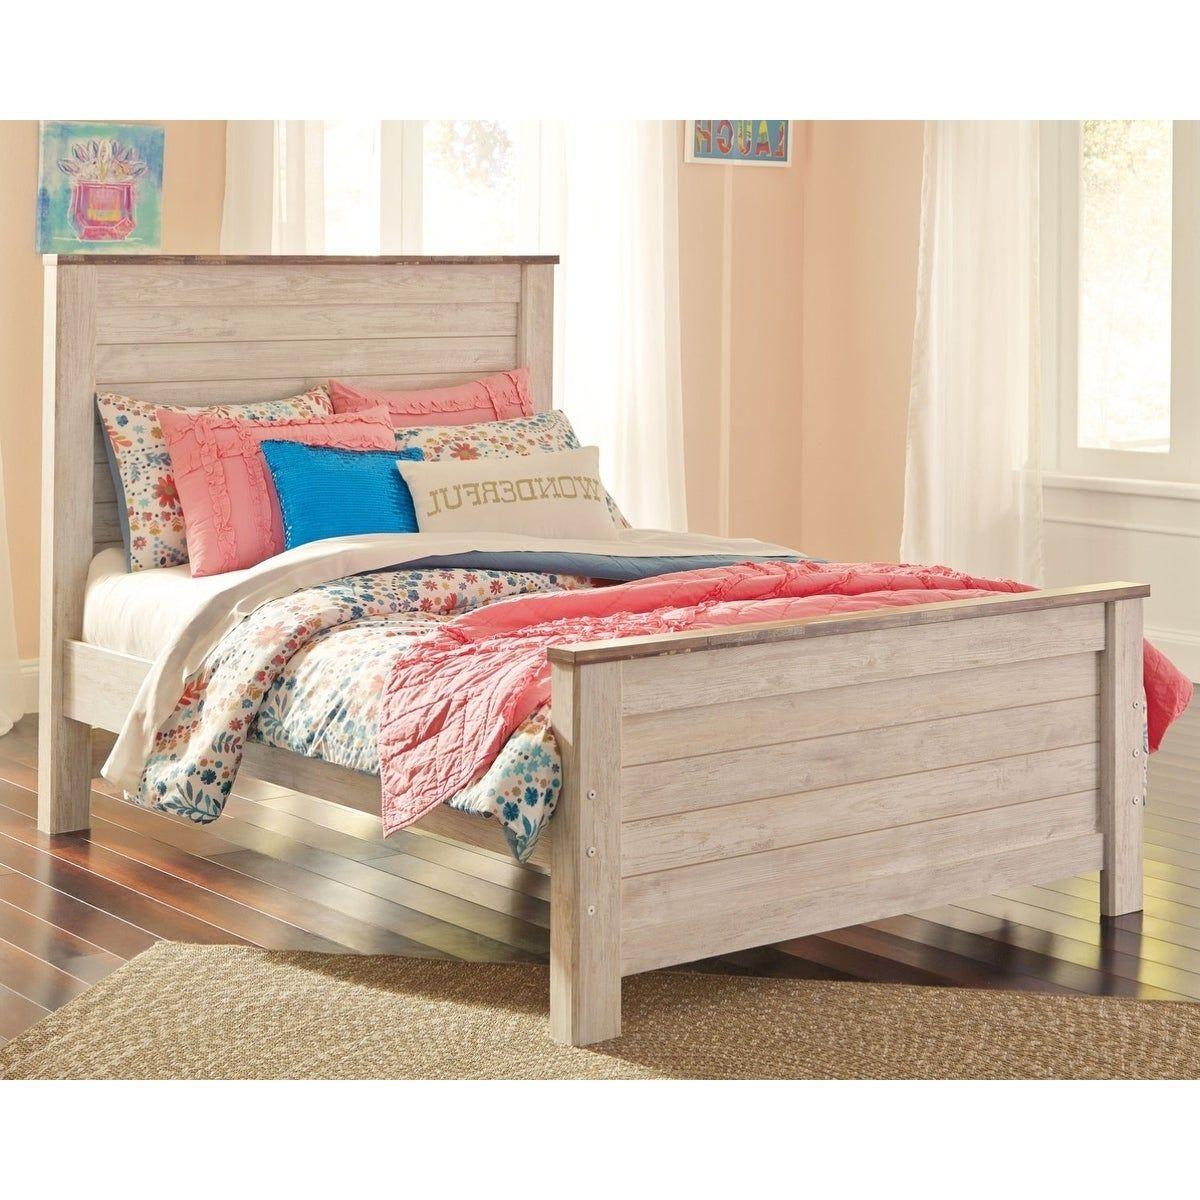 Ashley Derekson Twin Bed Homemakers Furniture Furniture Panel Headboard Bed Frame Mattress